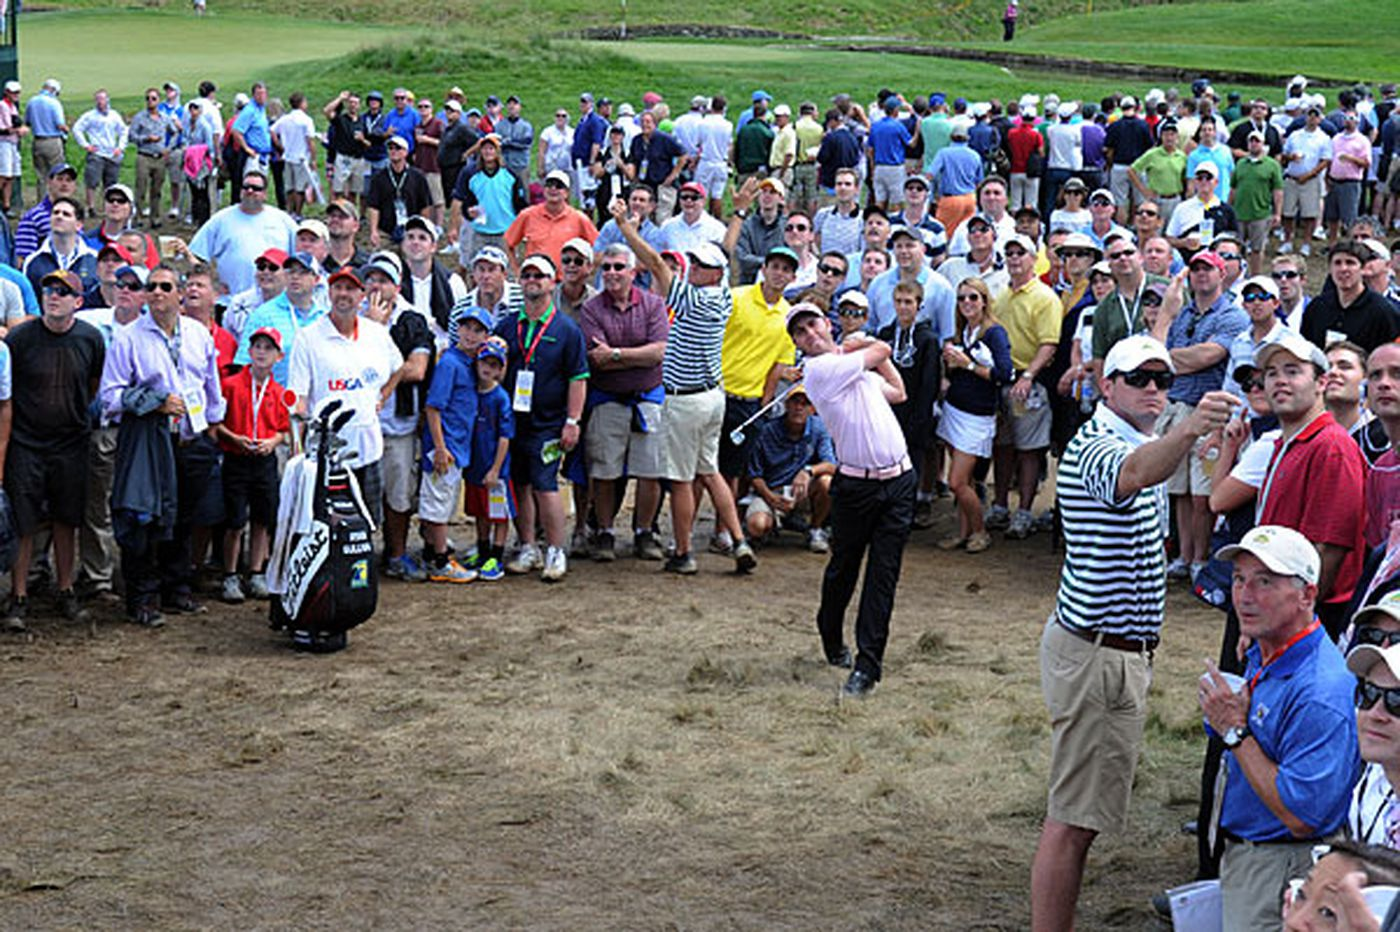 Philly should have a major golf tournament